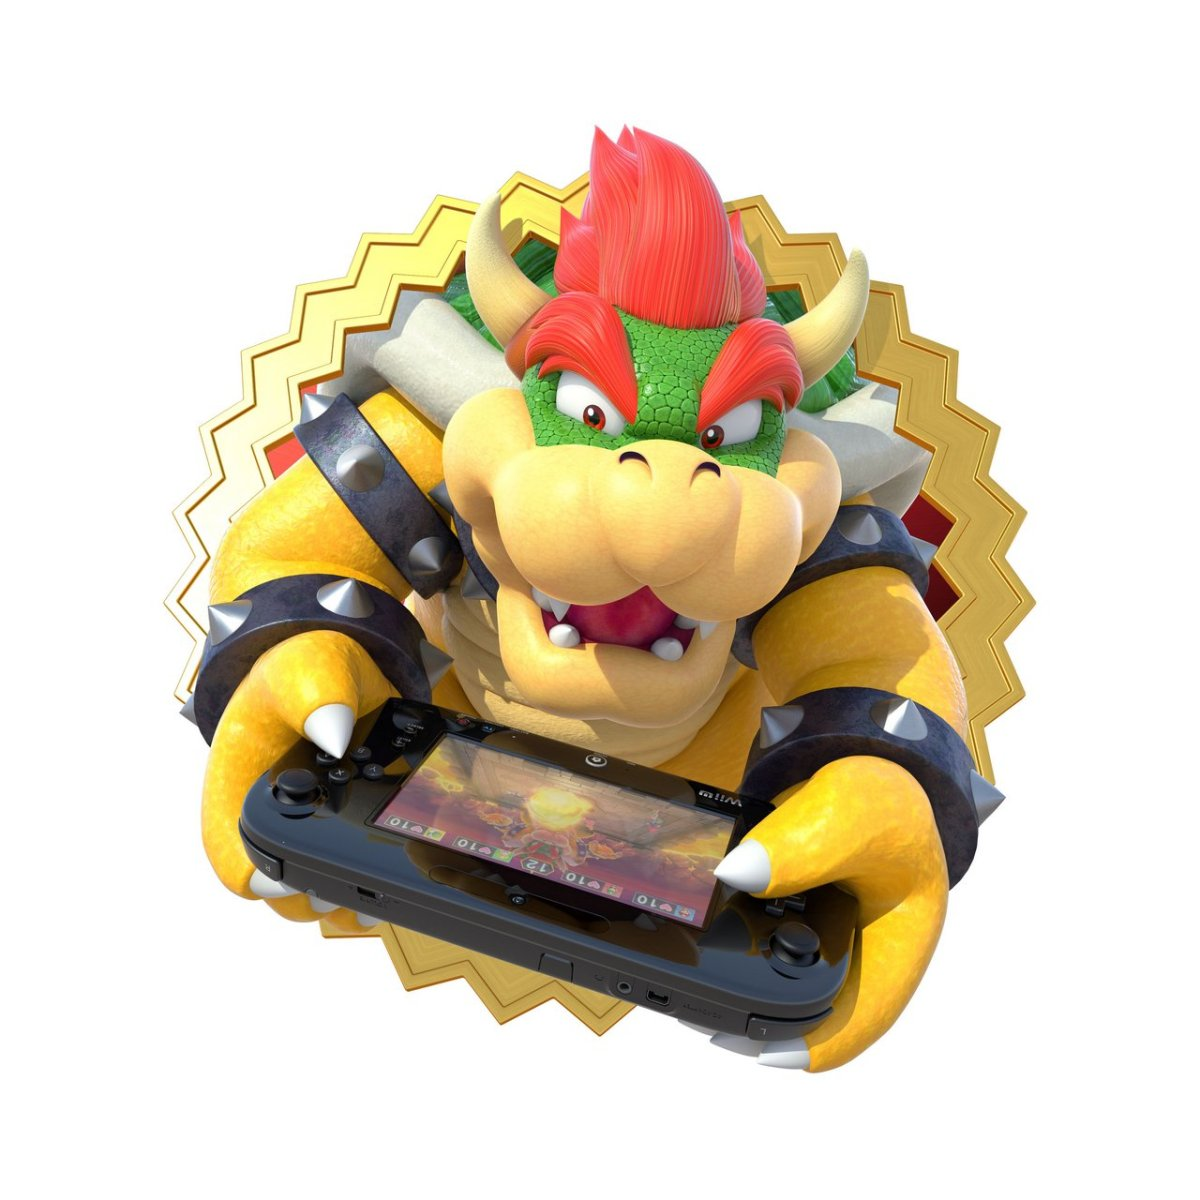 France: Nintendo 3DS Has Sold 3.4 Million Consoles Since Launch And Wii U Sold515,000